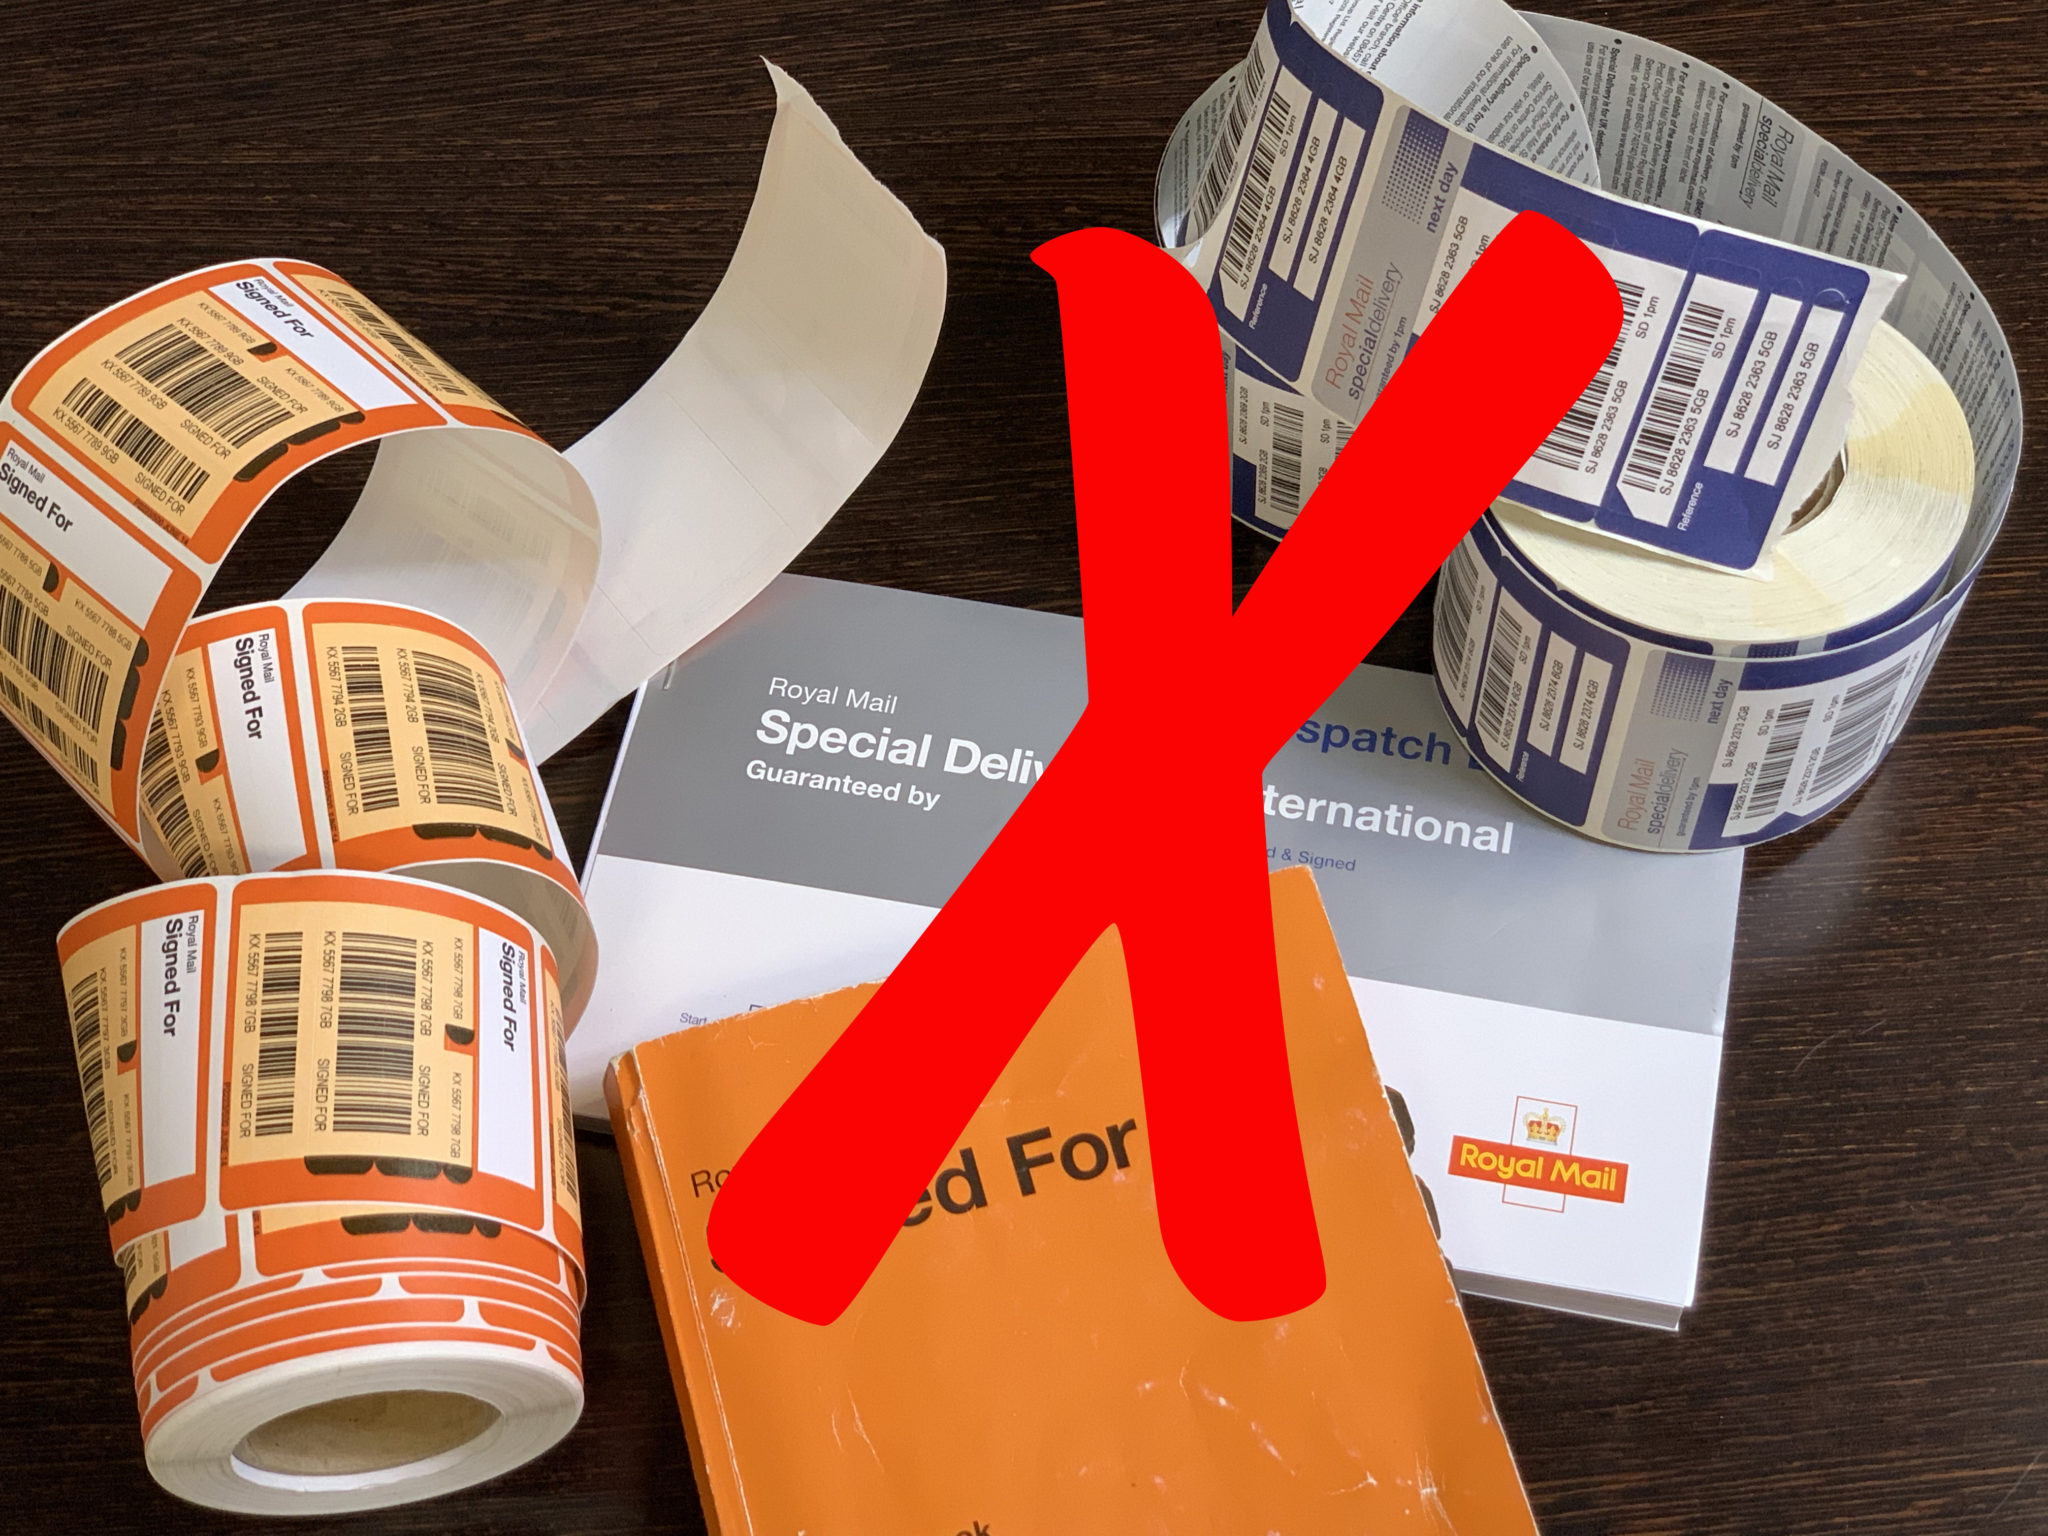 No more Special and Signed For barcode labels and books required